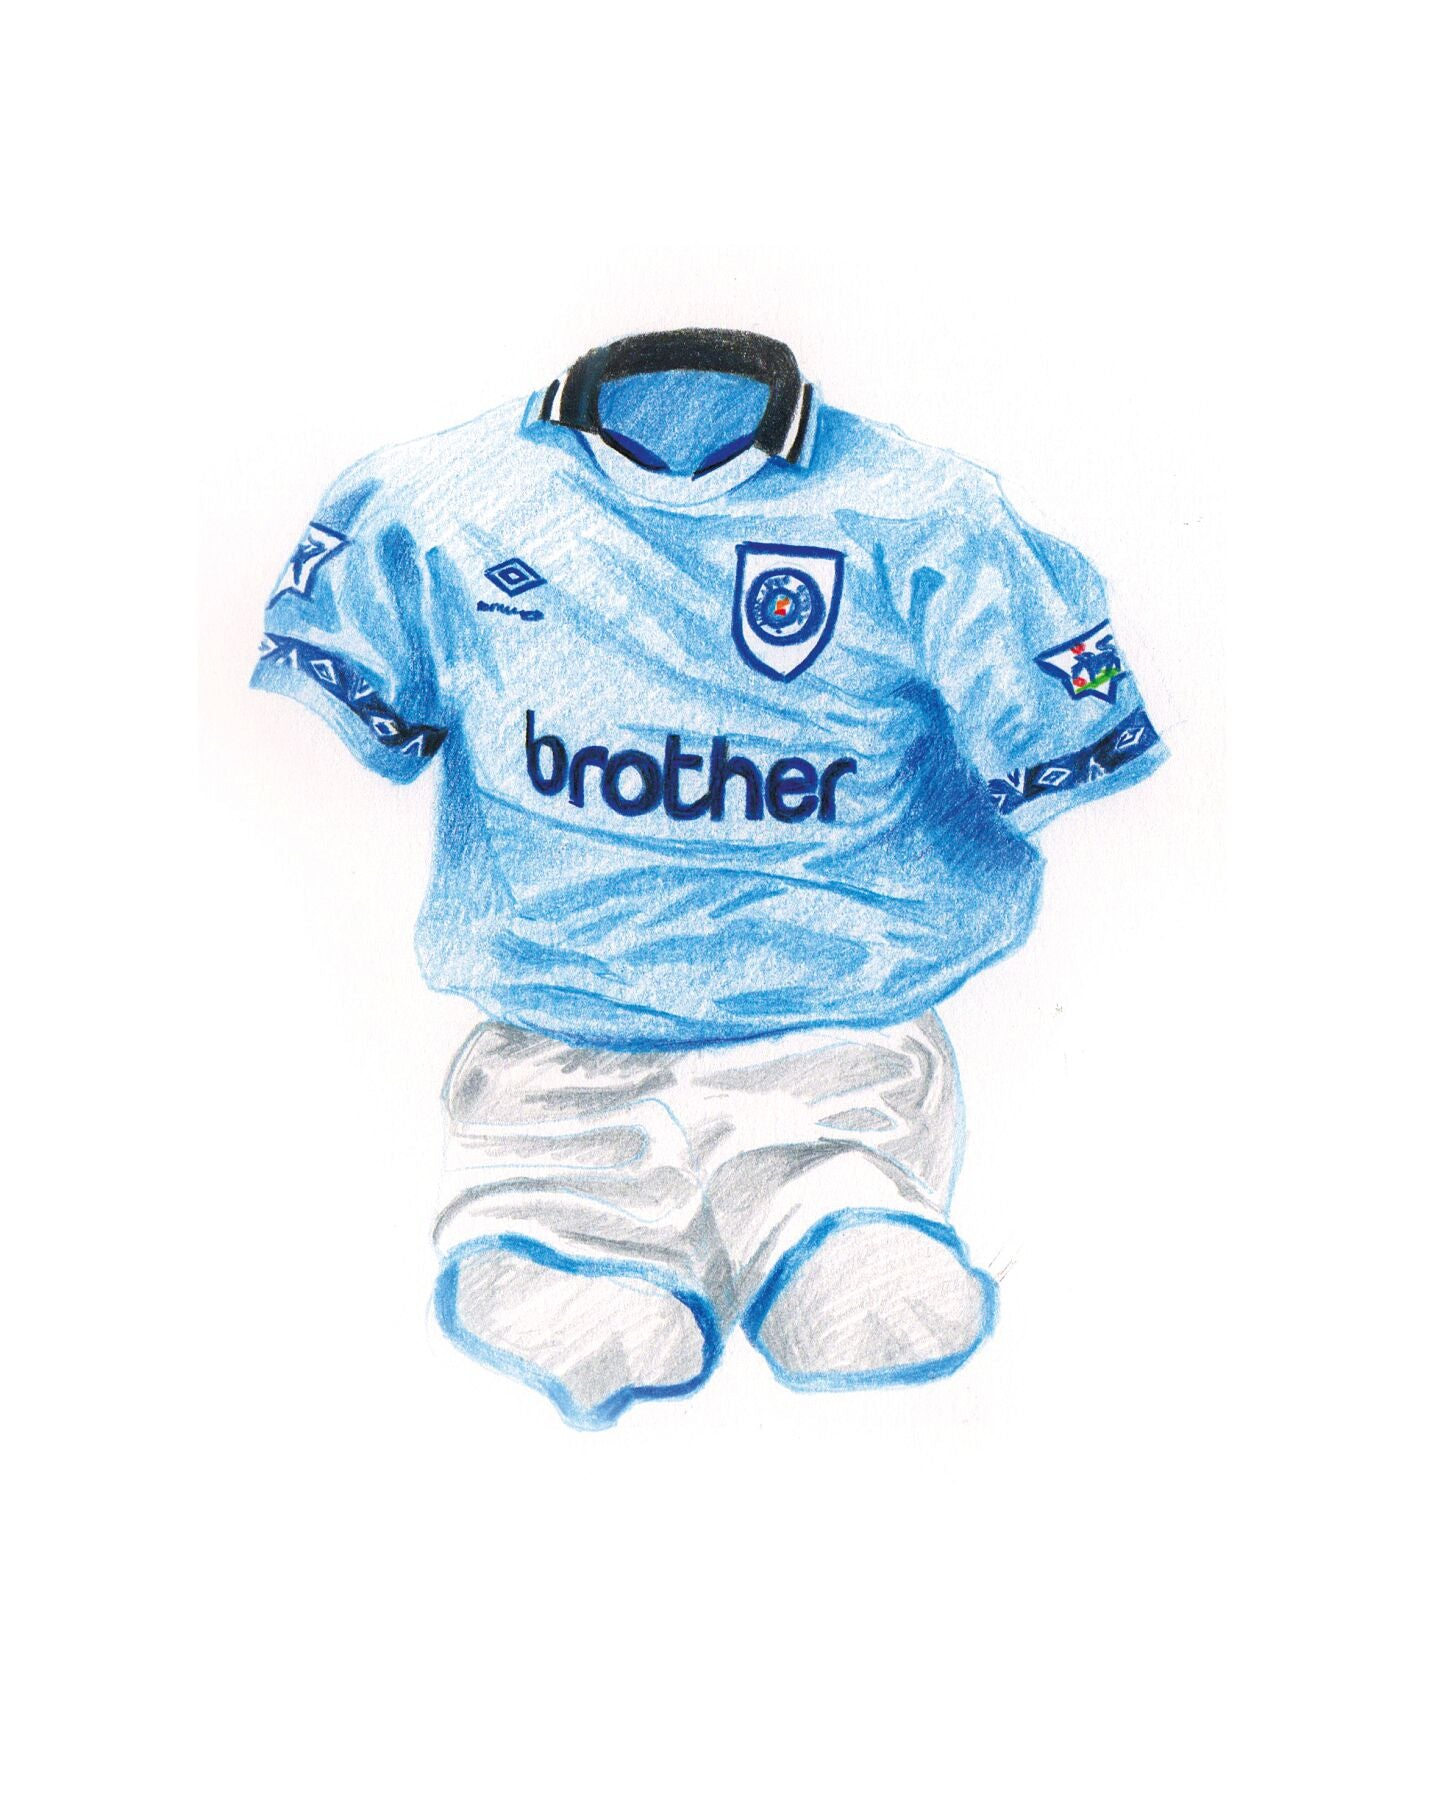 Man City Home '94-'95